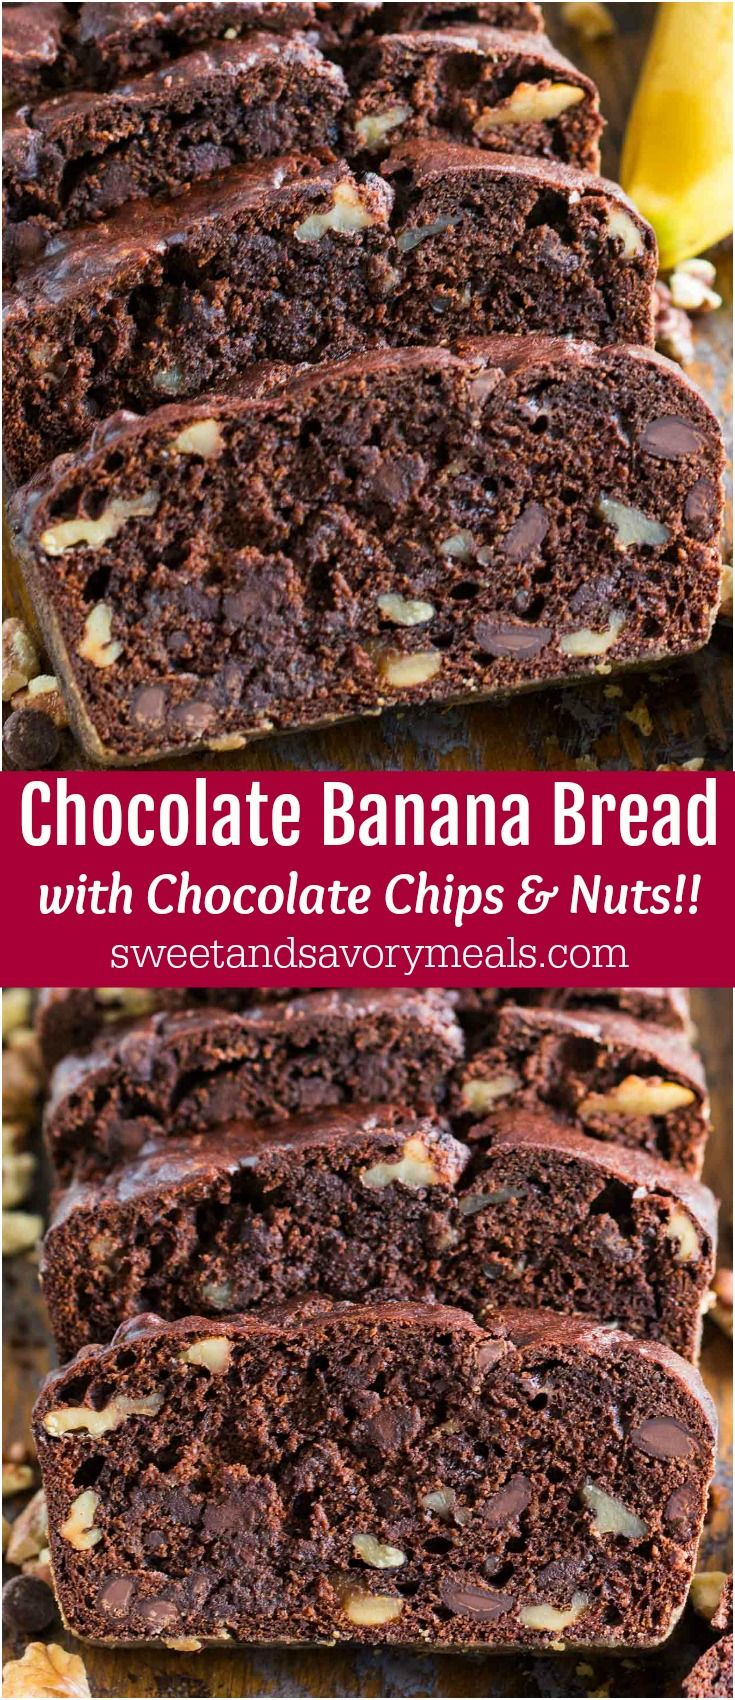 Chocolate Banana Bread with Nuts